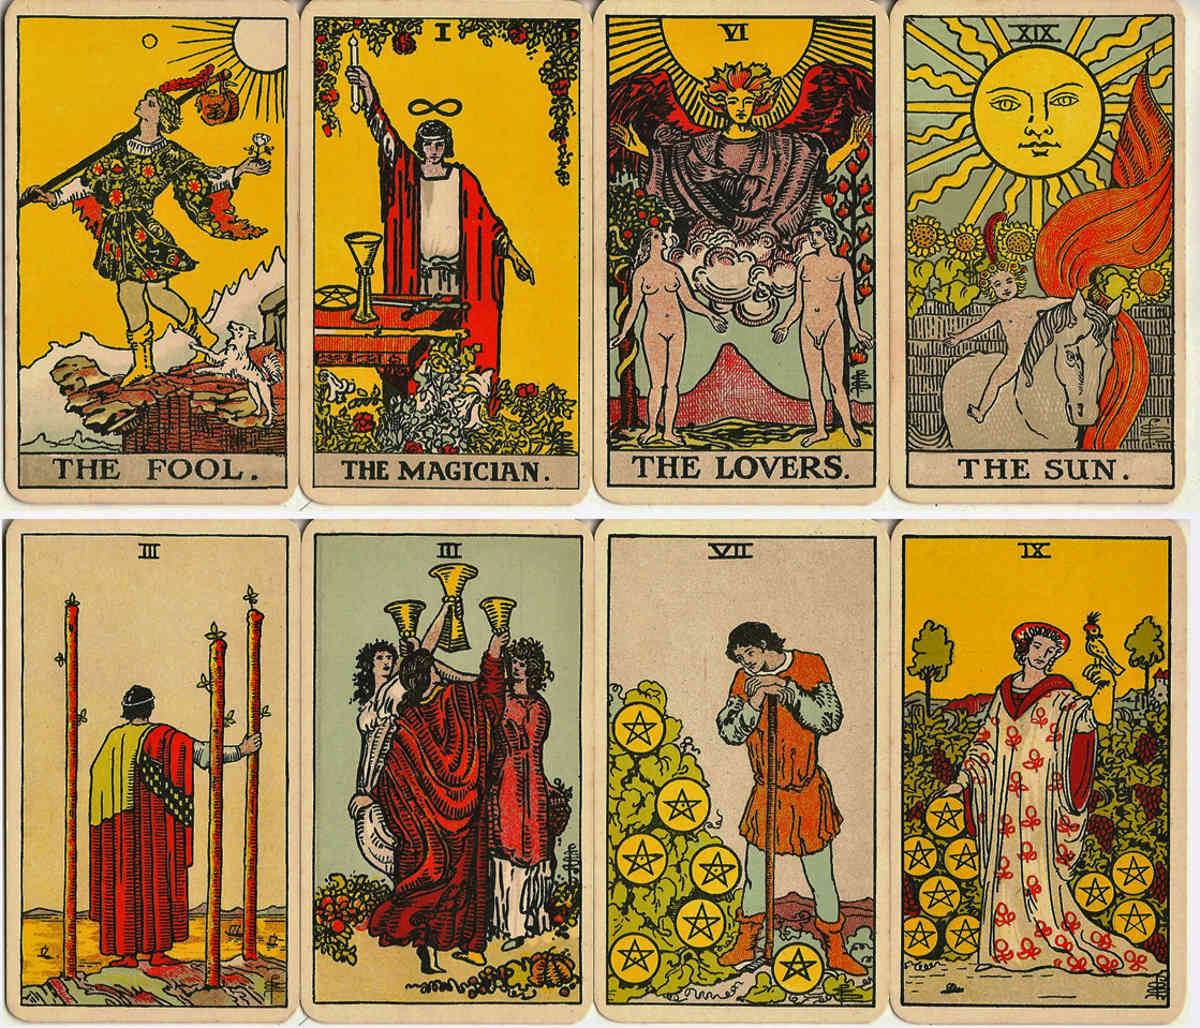 Rider Waite Tarot early editions - The World of Playing Cards